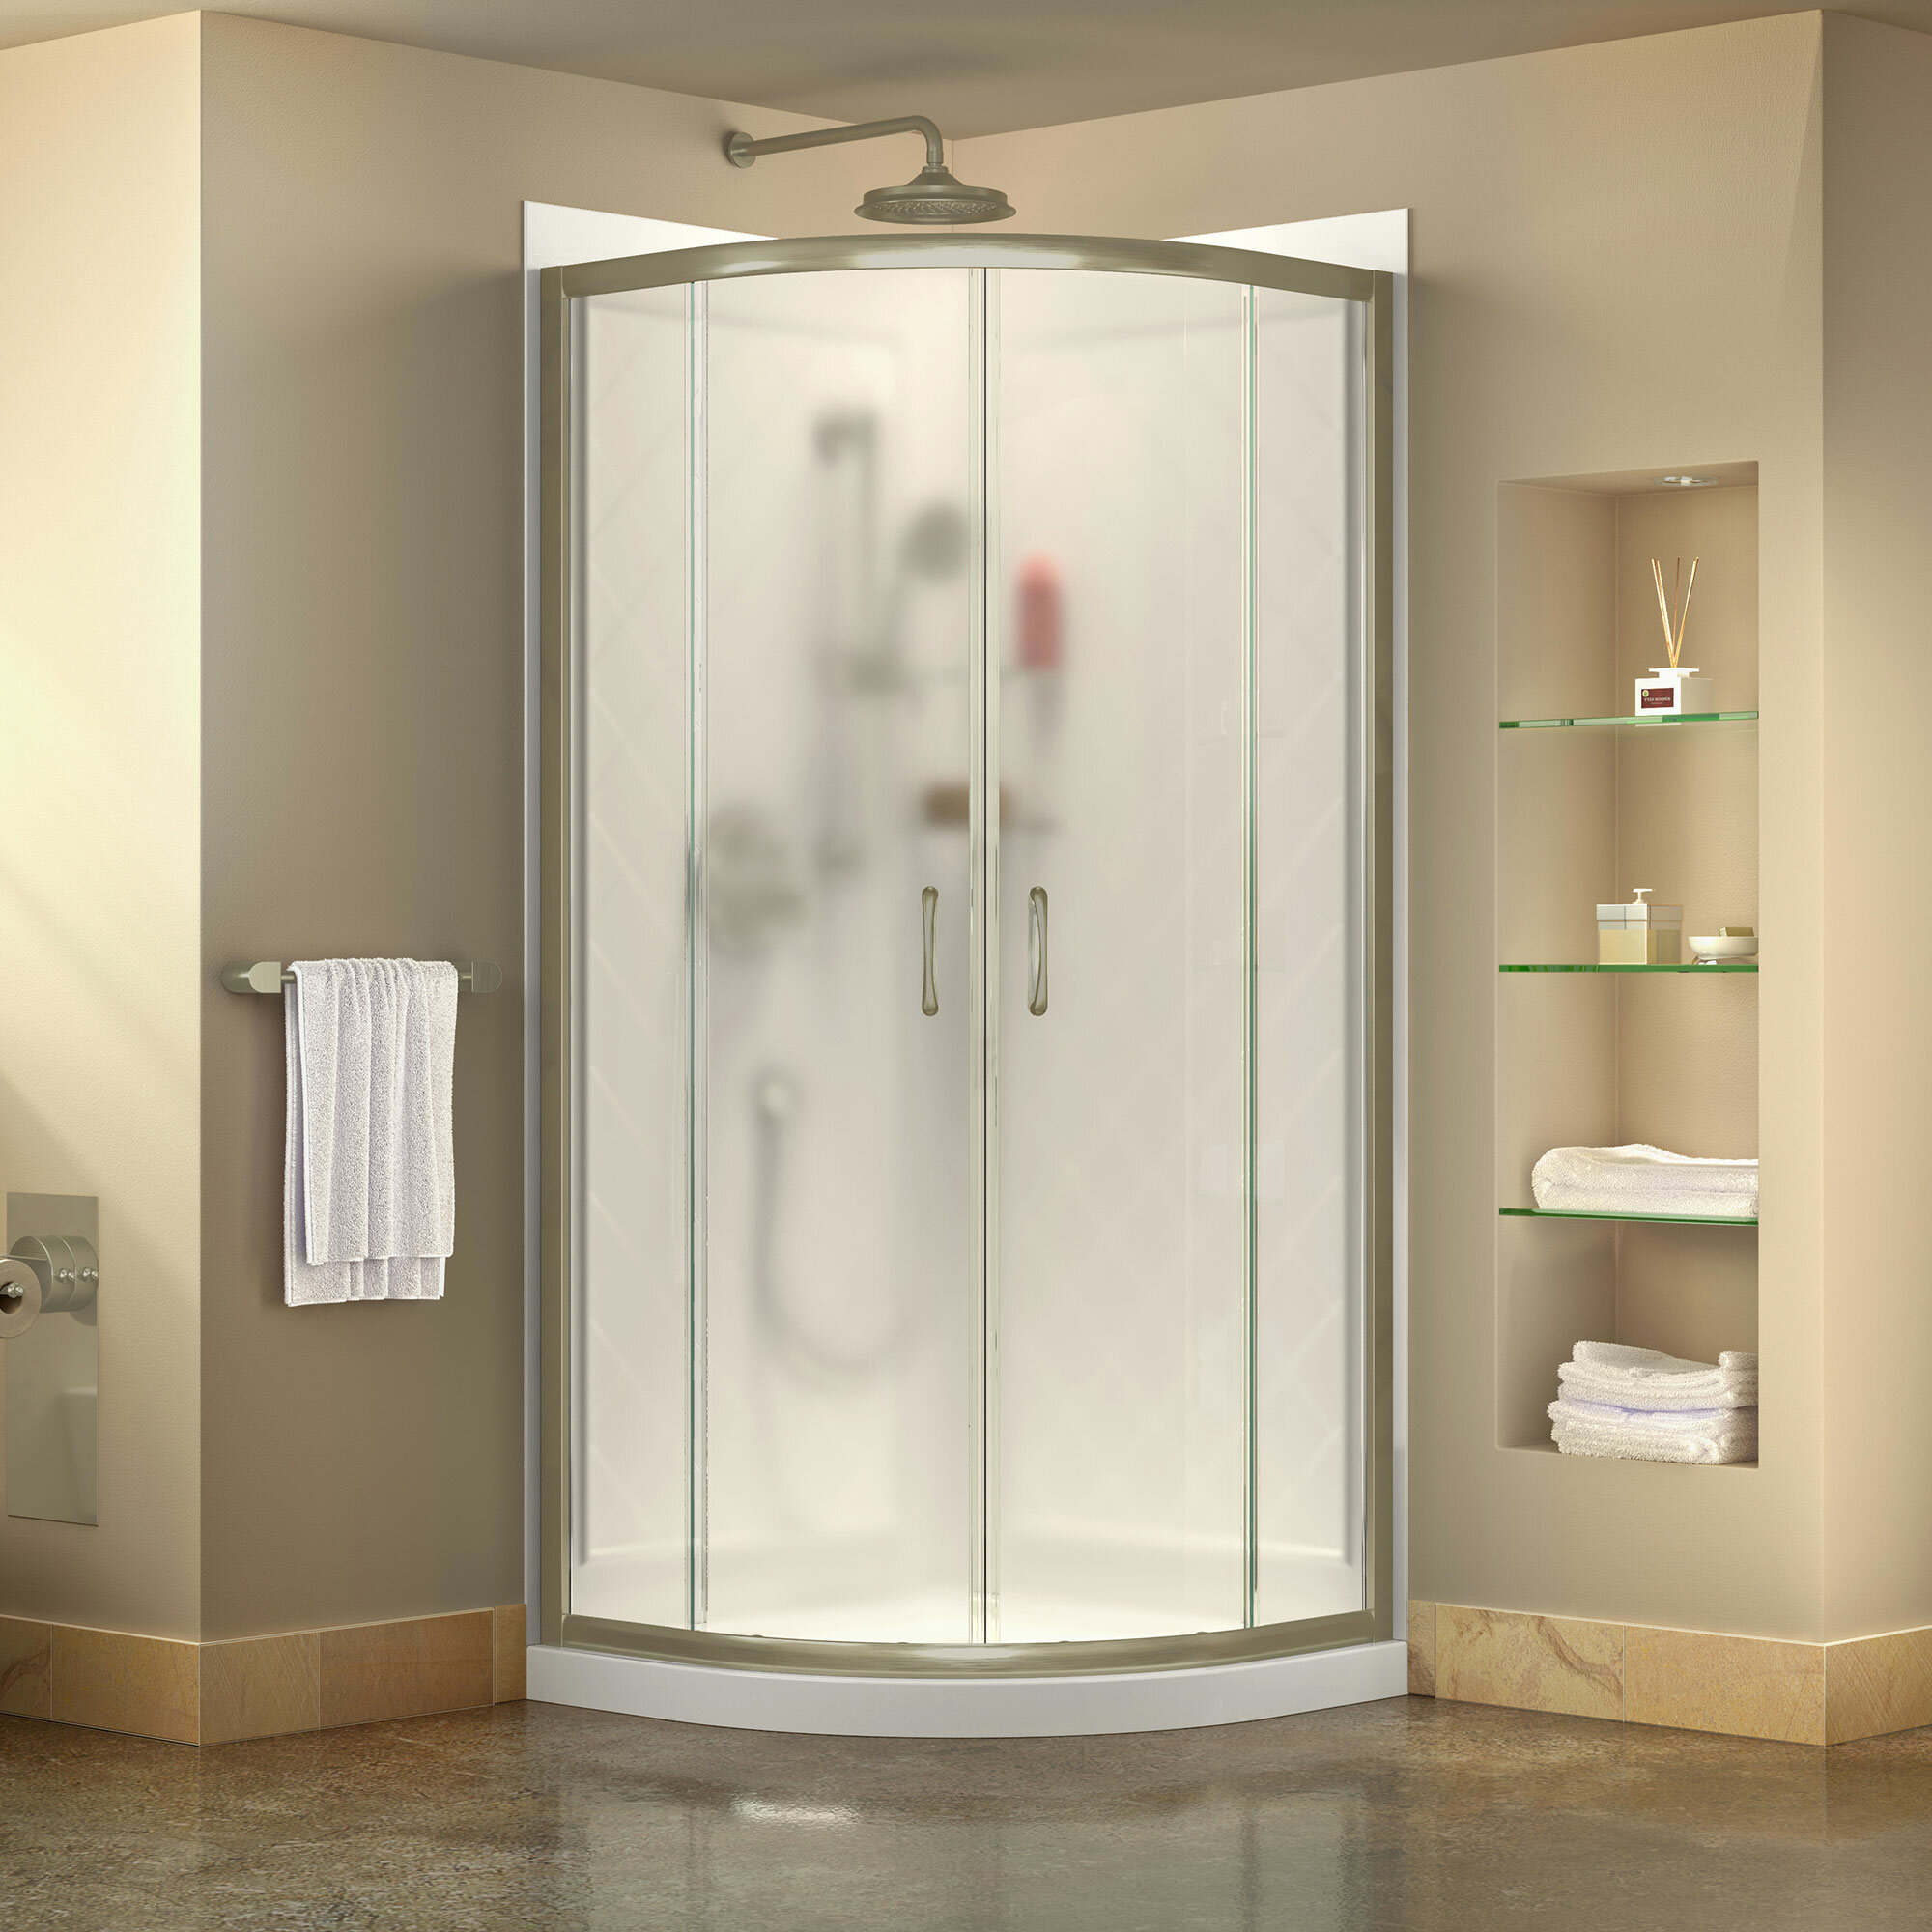 Dreamline Prime 38 X 76 75 Round Sliding Shower Enclosure With Base Included